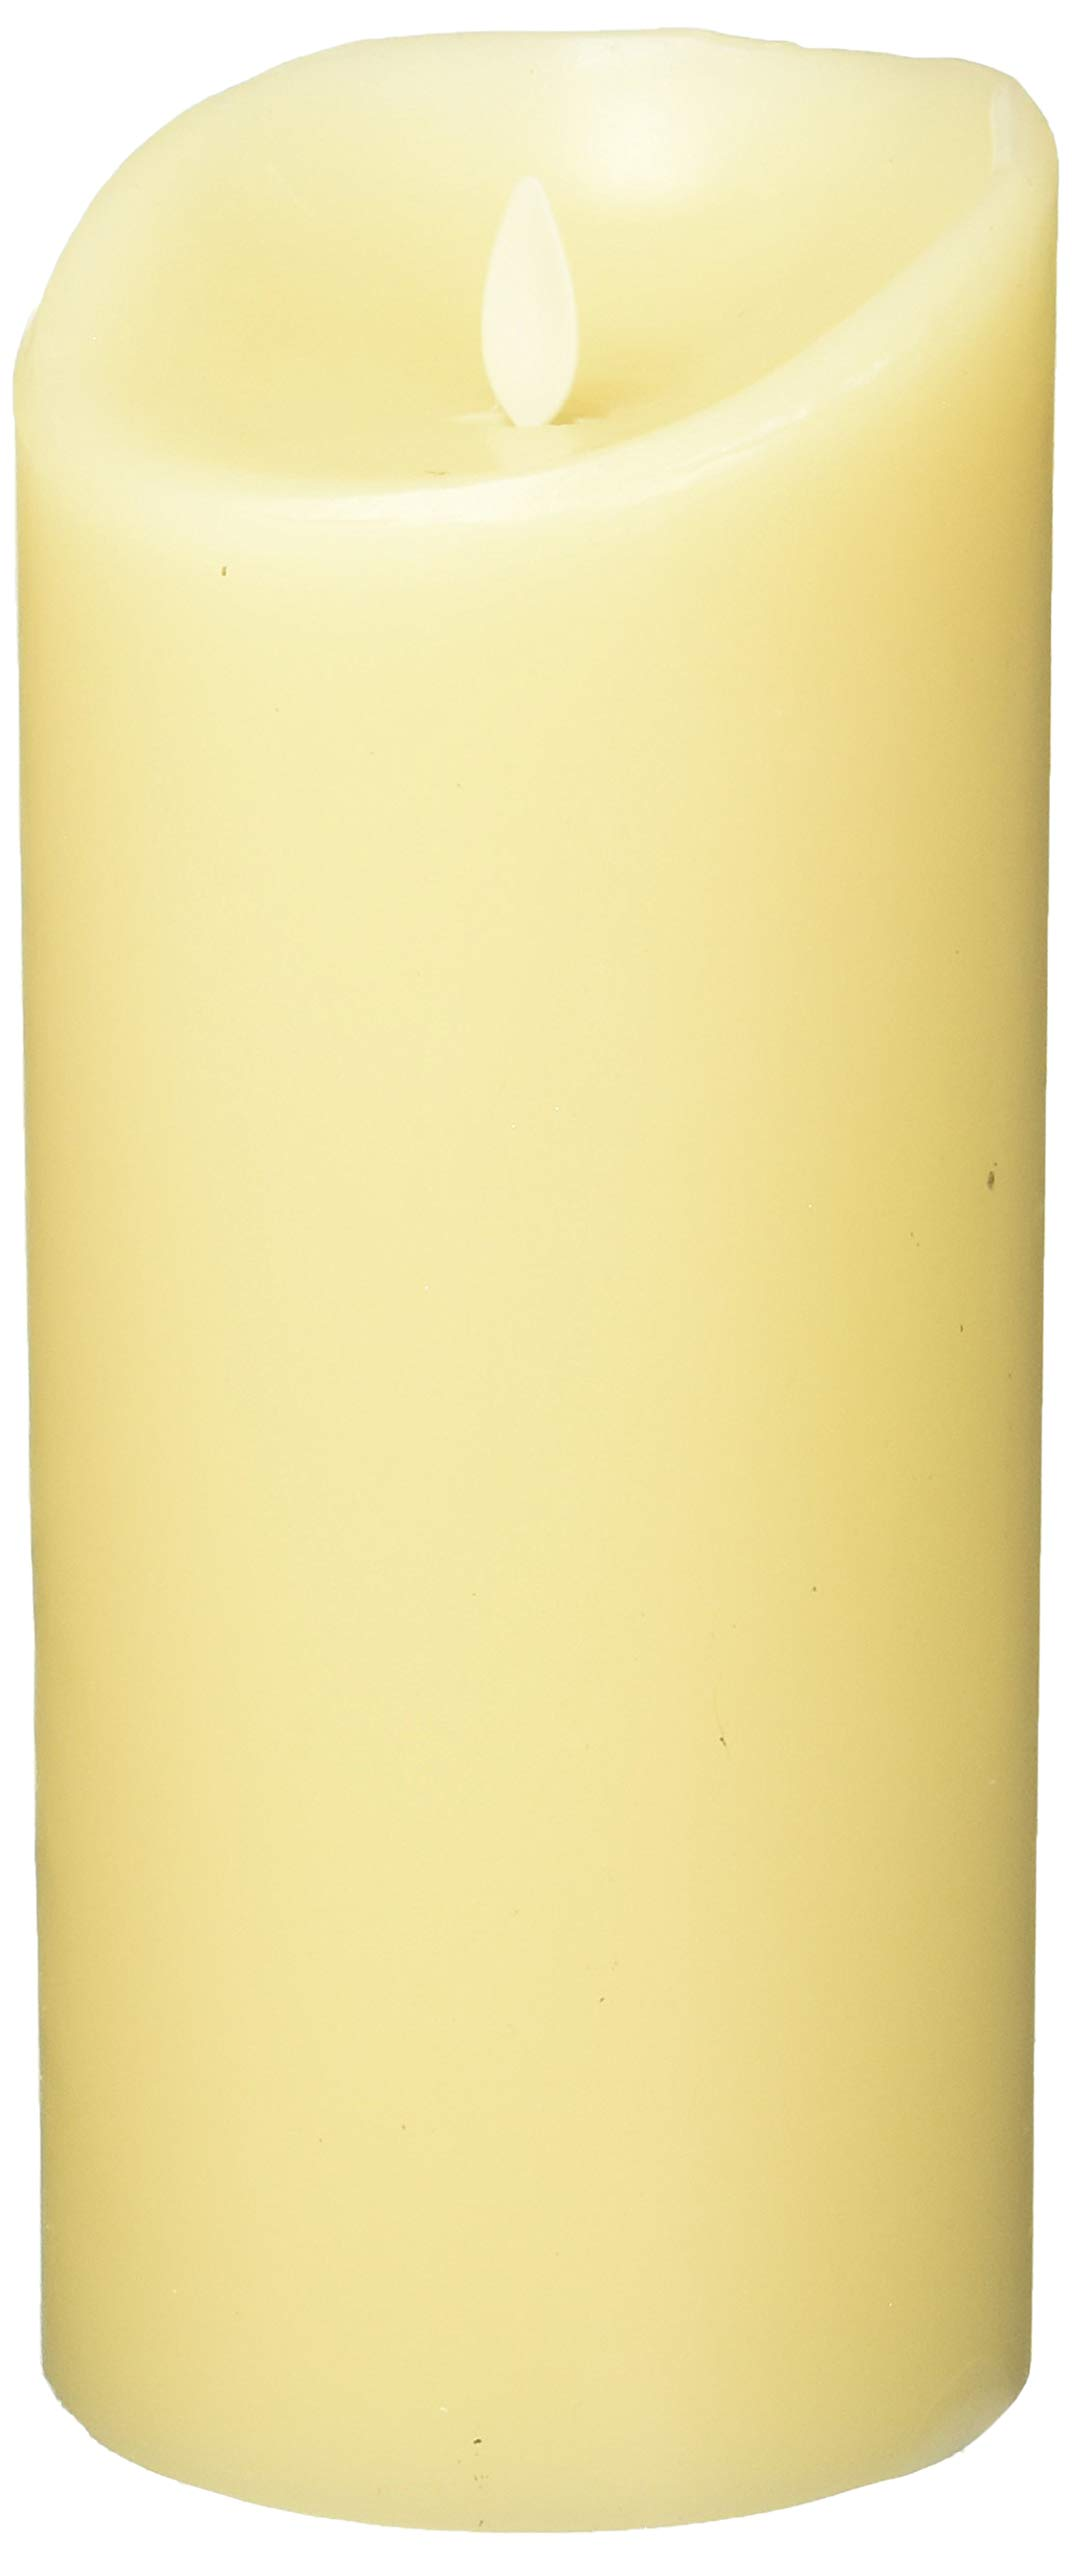 Luminara Flameless Vanilla Scented Moving Flame Candle With Timer (4''x9'' Ivory) by Moonflor